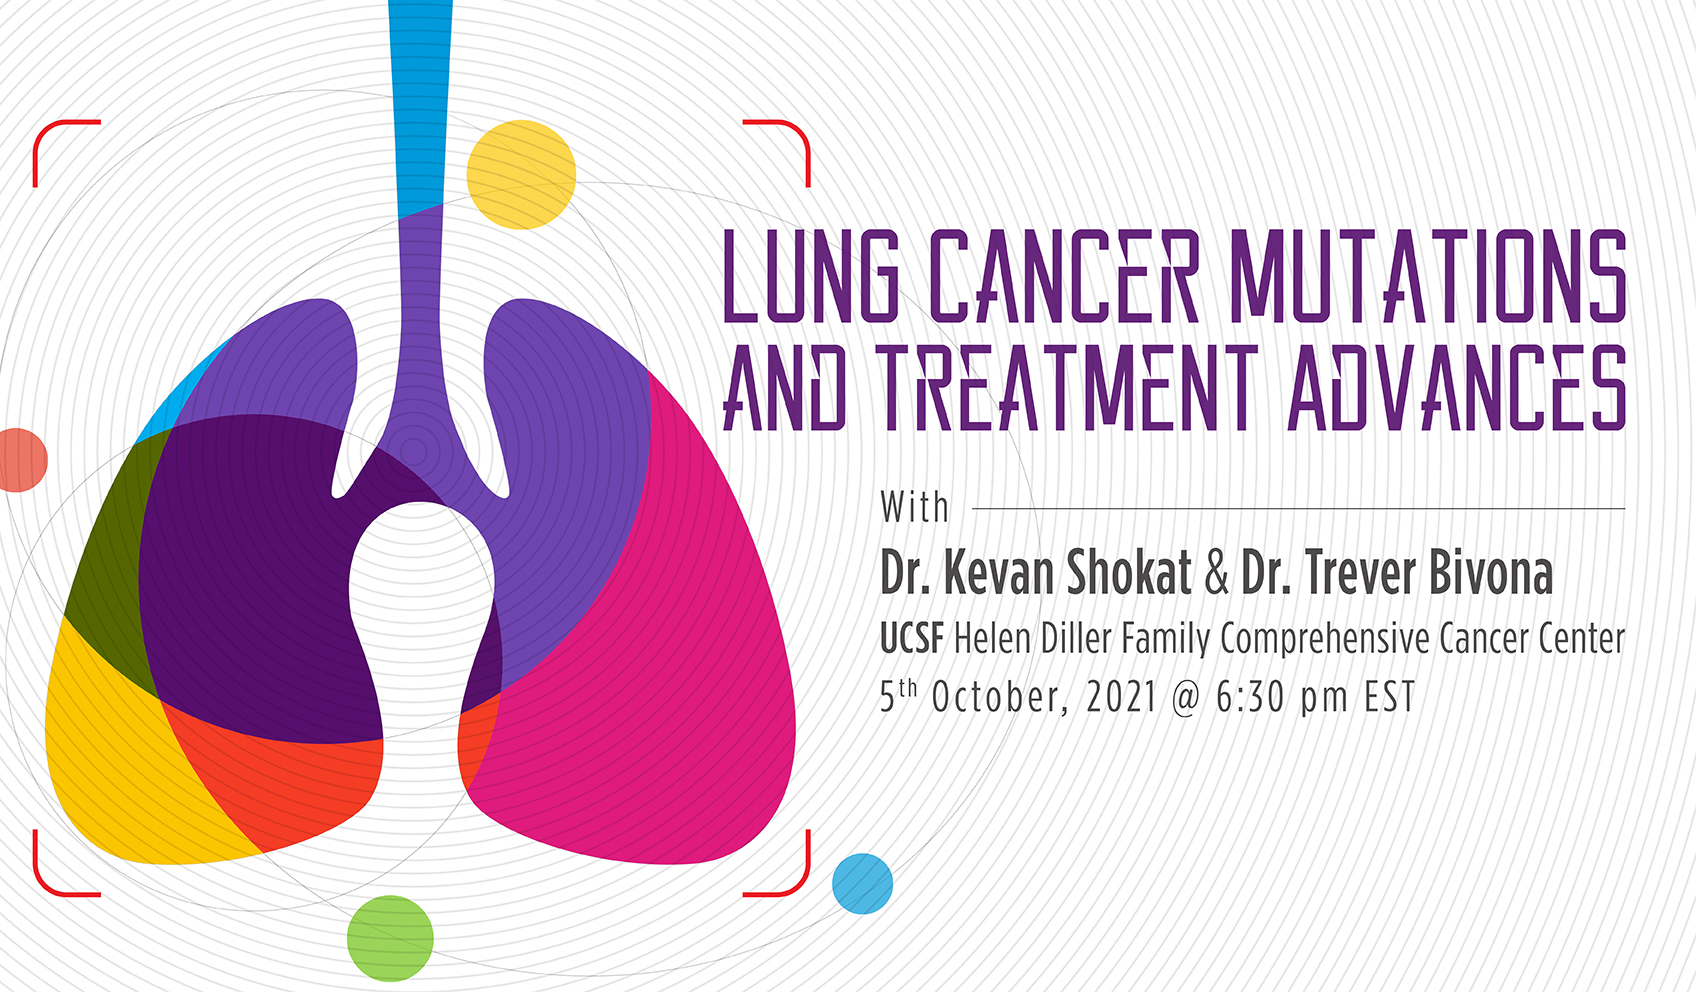 Lung Cancer Mutations and Treatment Advances